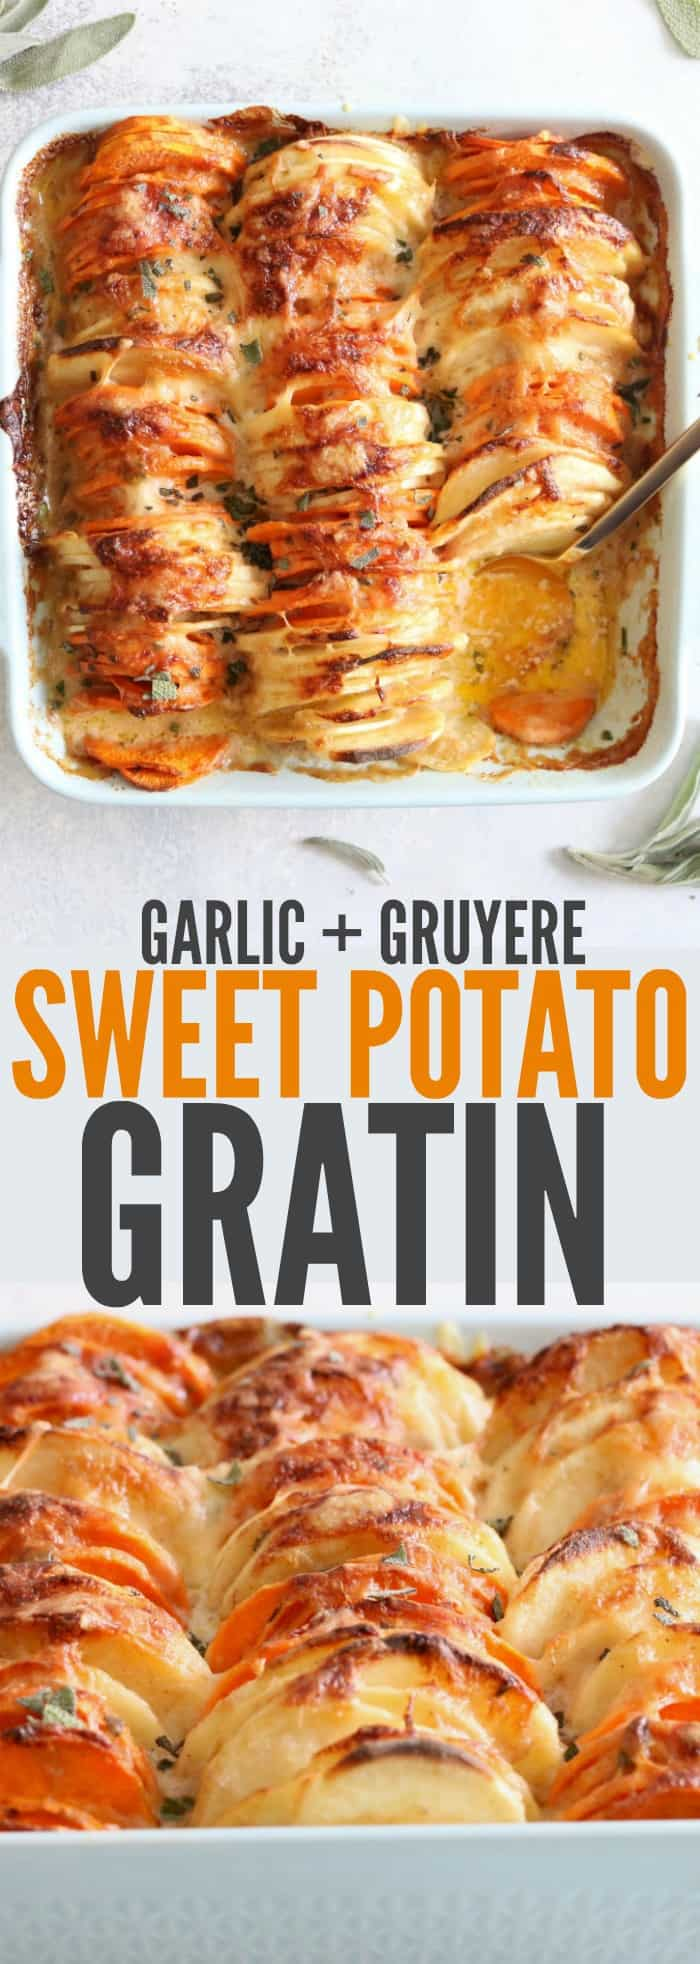 Delicious and indulgent Garlic + Gruyere Sweet Potato Gratin will be your new favorite recipe this holiday season! It's such and easy and yummy side dish! thetoastedpinenut.com #glutenfree #thanksgiving #christmas #recipe #sidedish